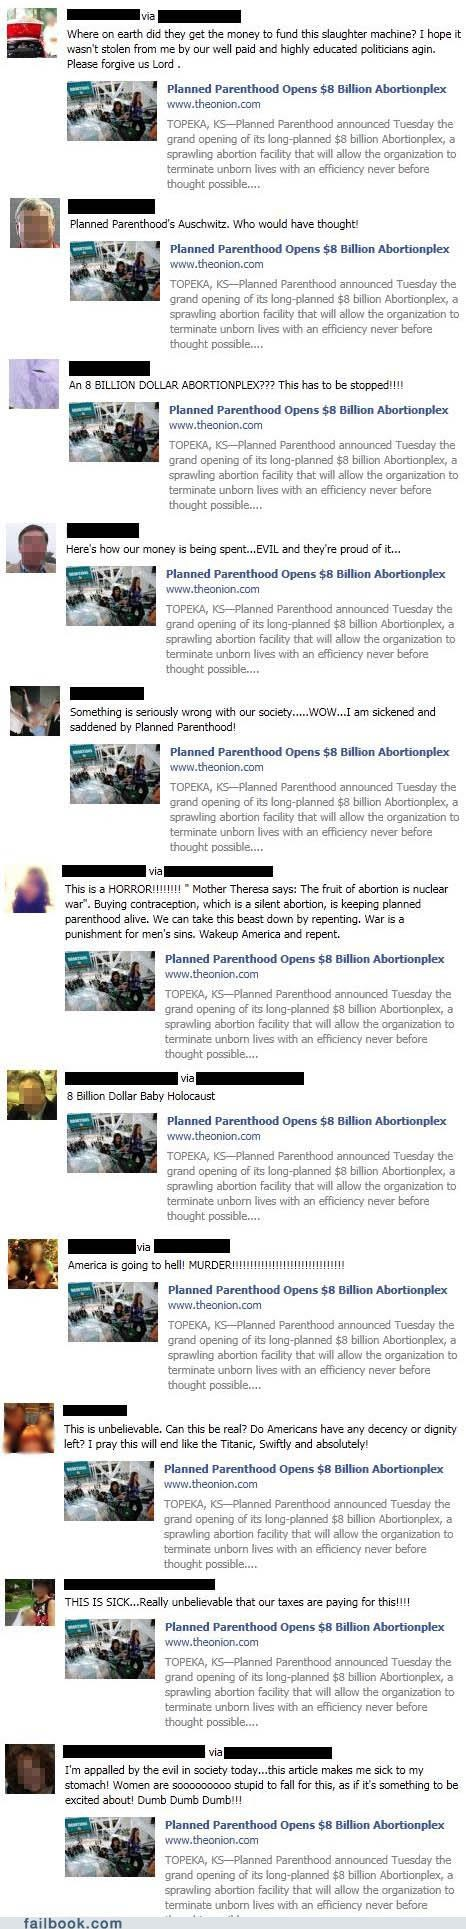 facepalm Featured Fail idiots Planned Parenthood really the onion - 4780644352